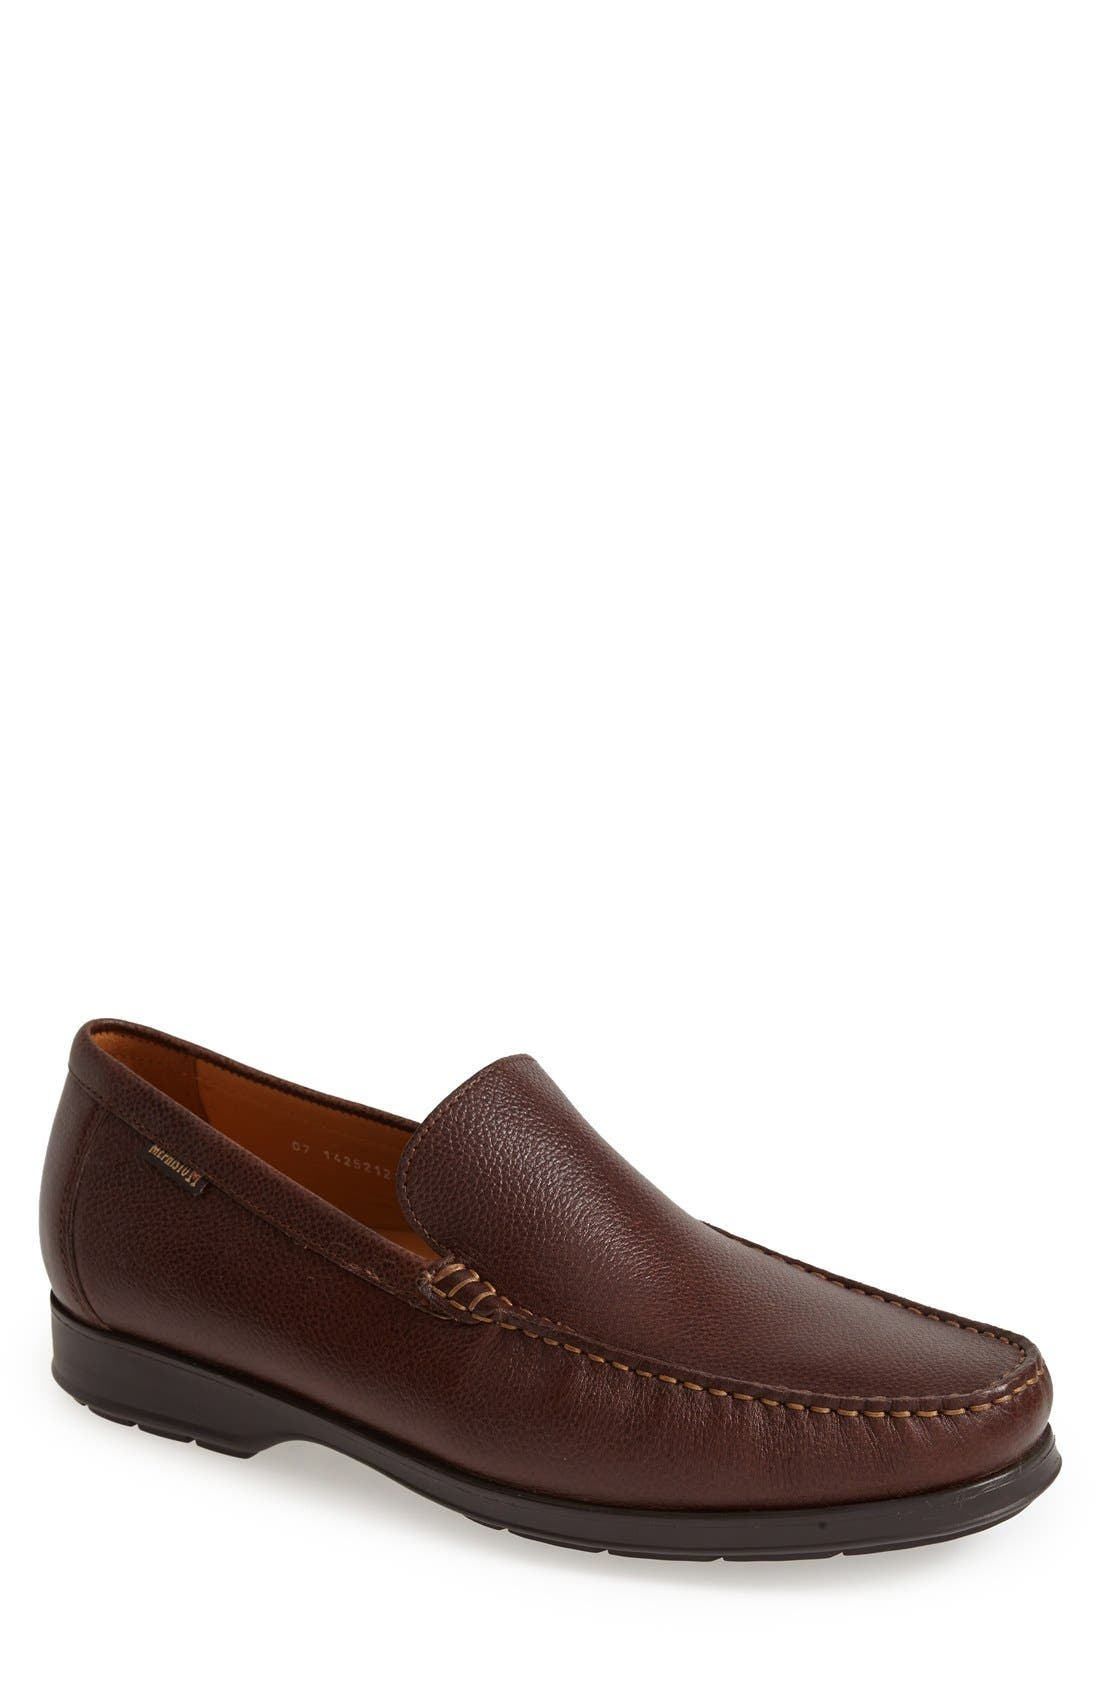 'Henri' Loafer,                             Main thumbnail 1, color,                             CHESTNUT LEATHER